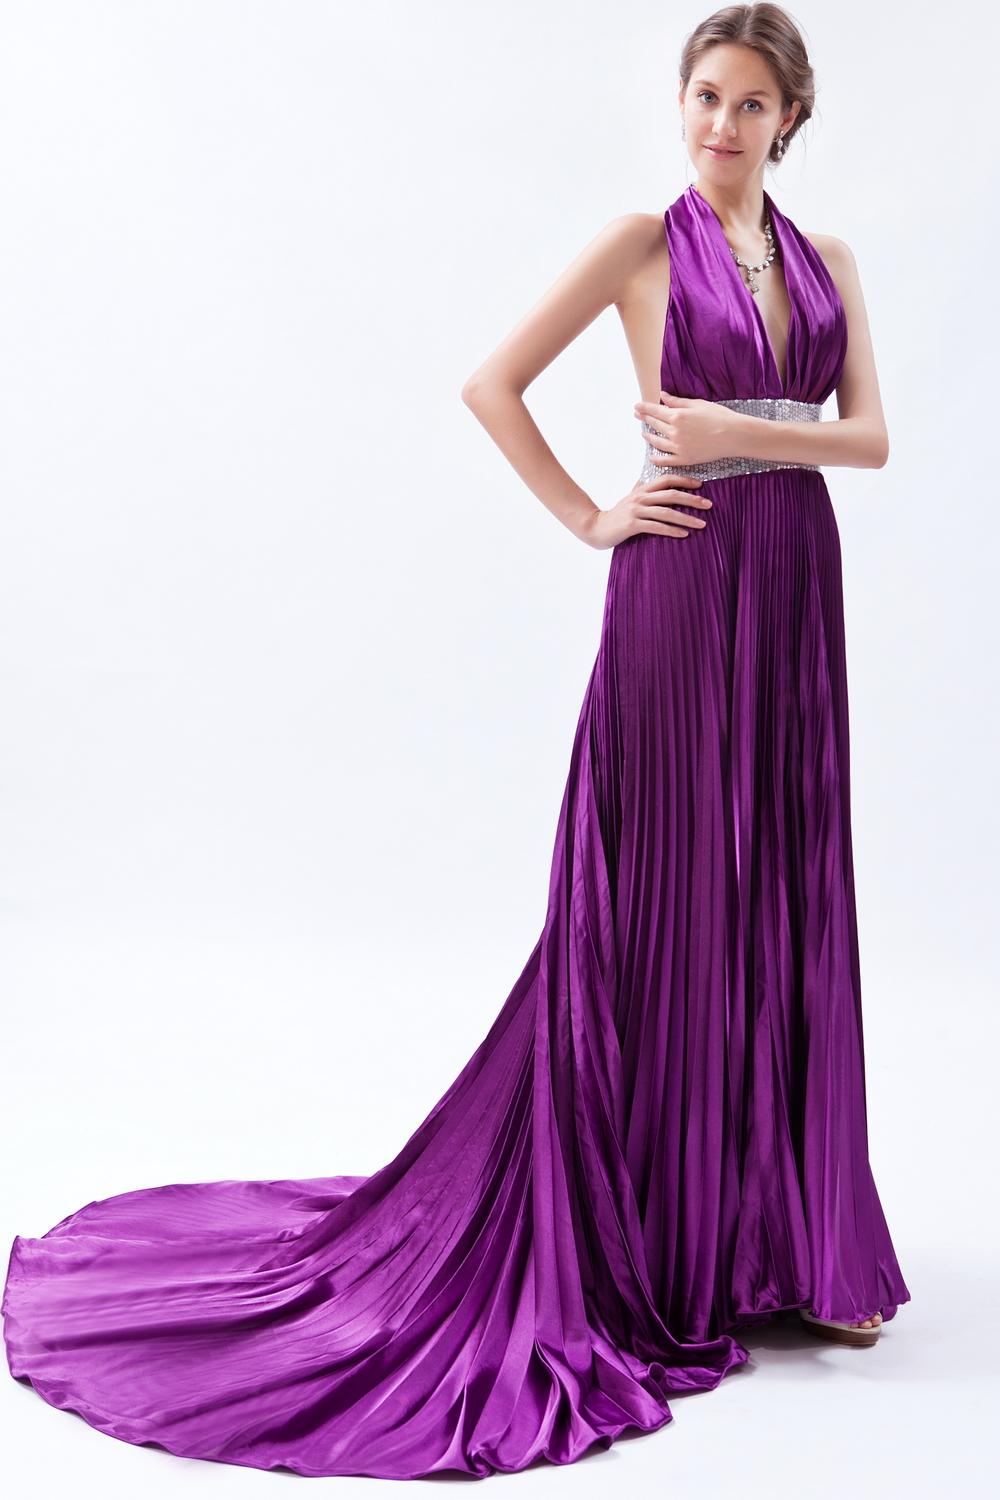 Sequin Pleat Eggplant Purple V-neck Halter Evening Dress Court Train